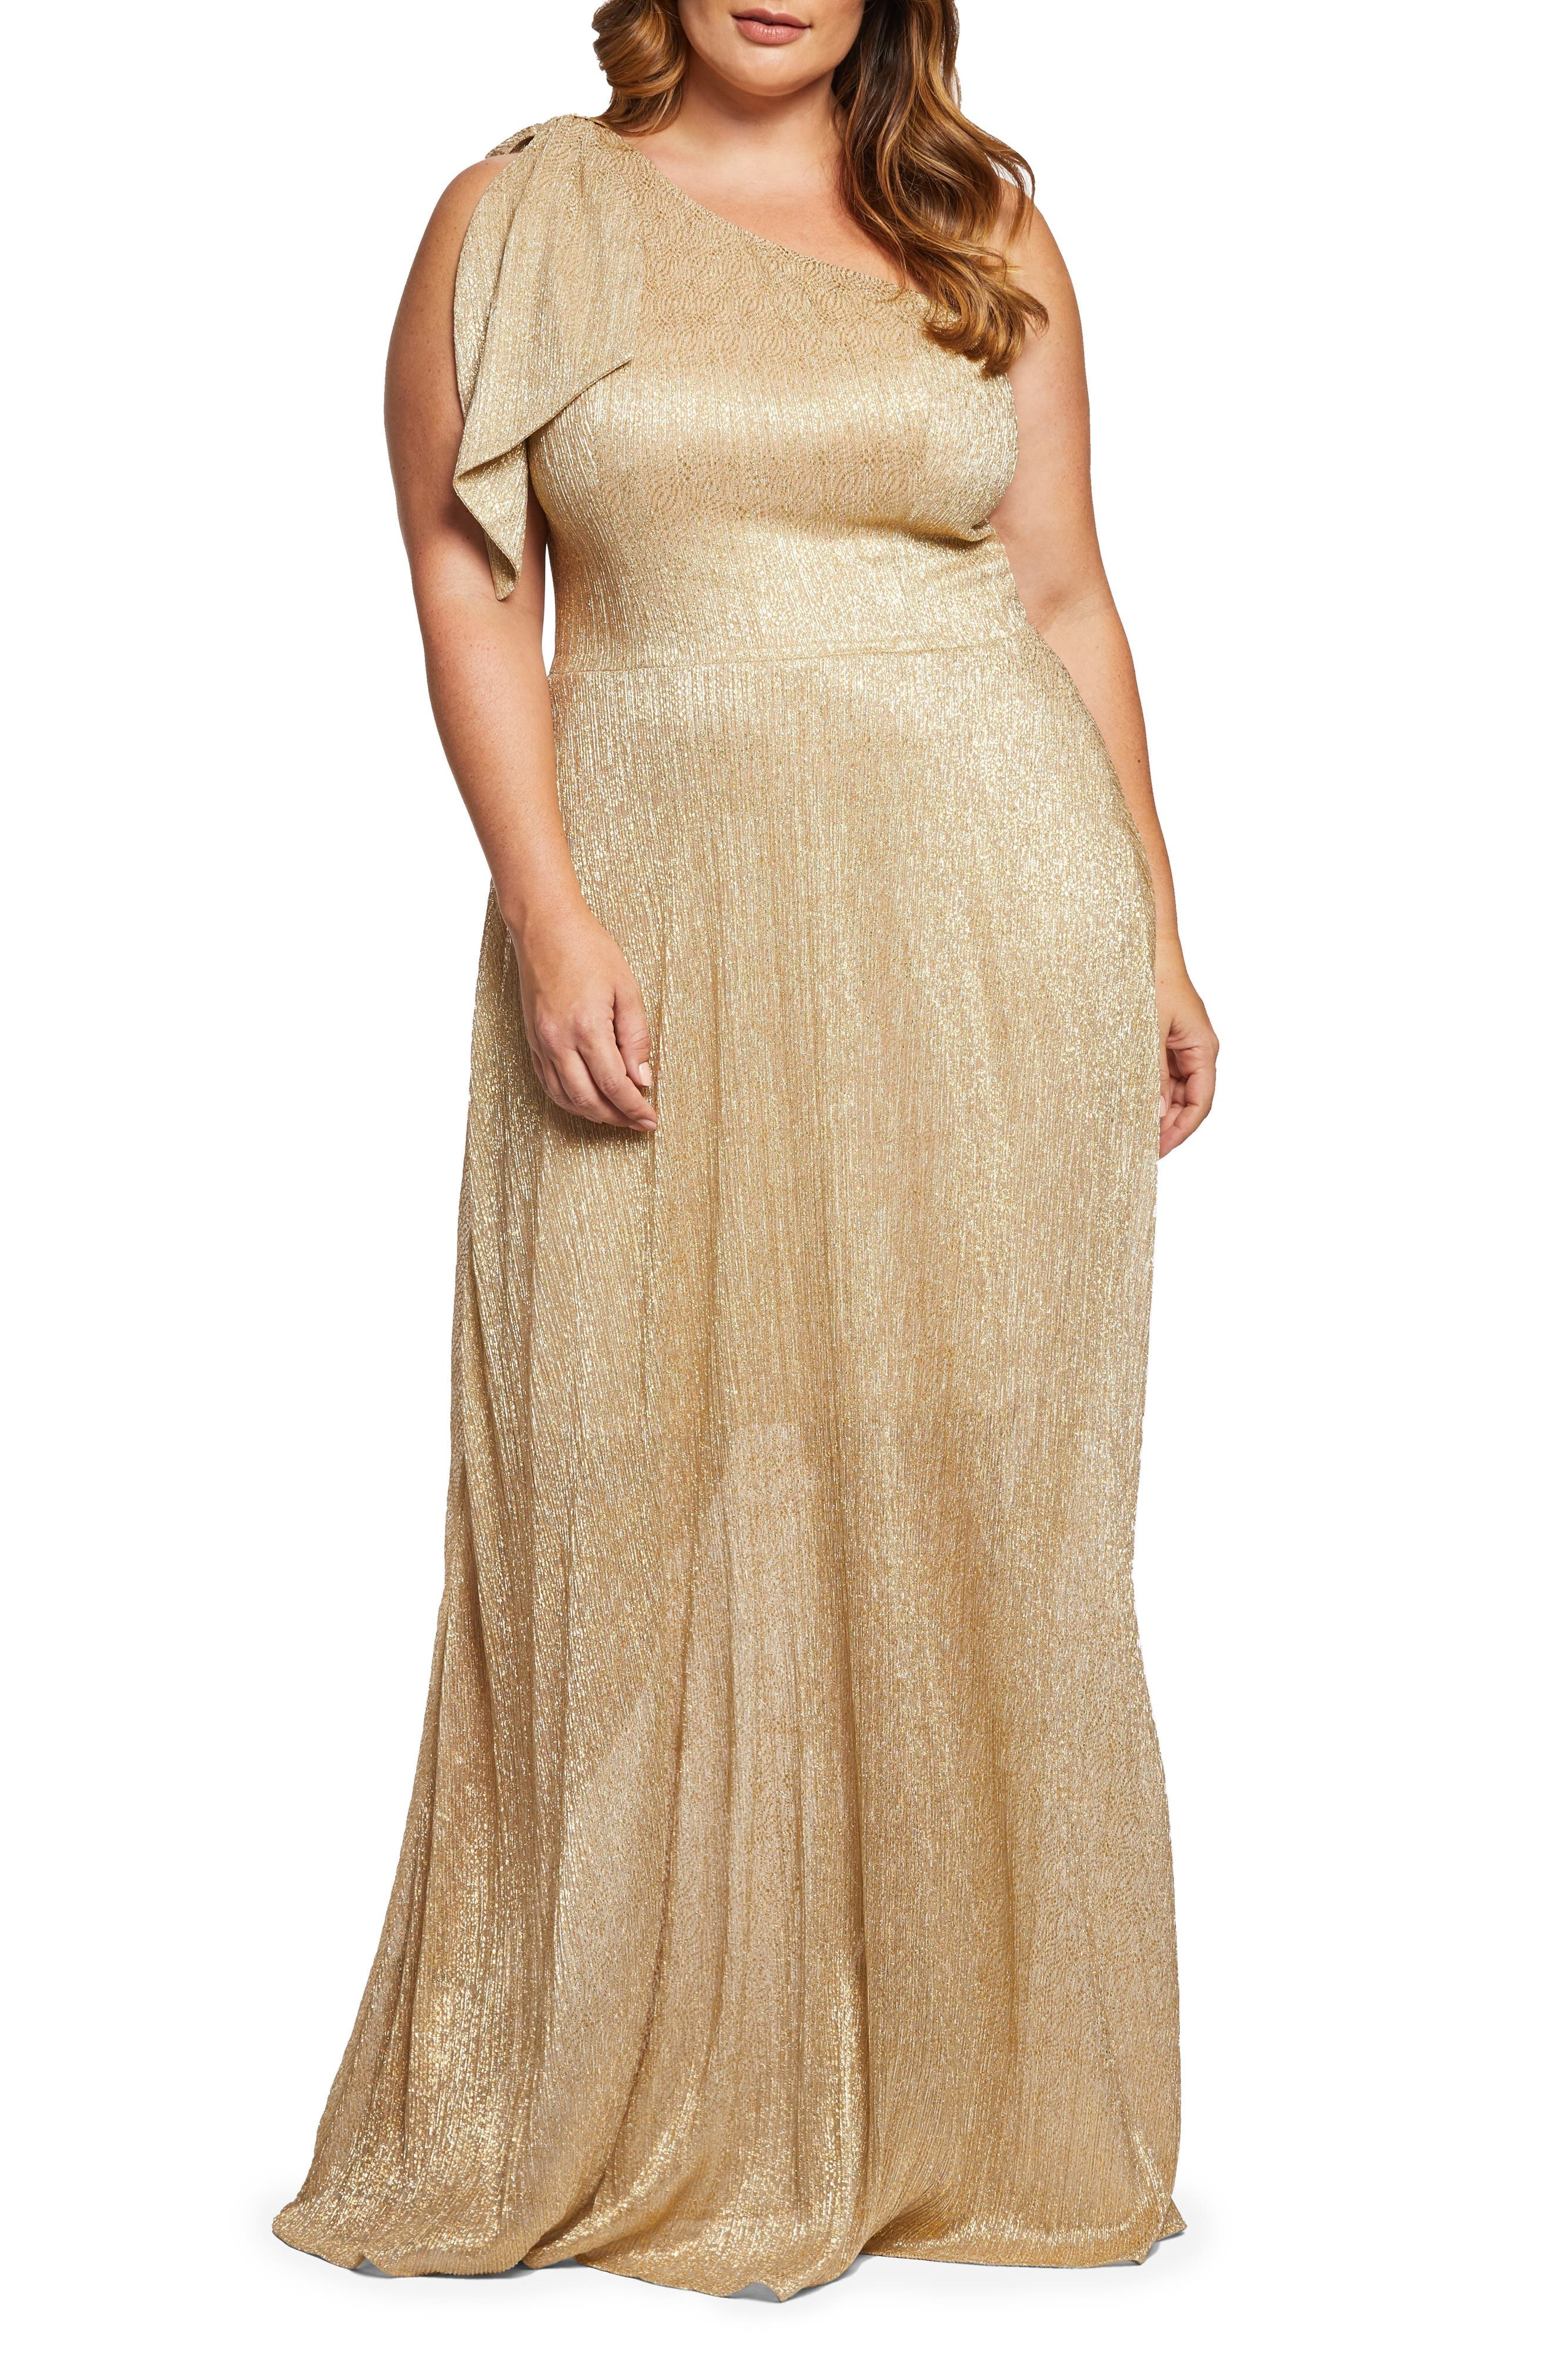 Plus Size Dress The Population Savannah One-Shoulder Gown, Metallic